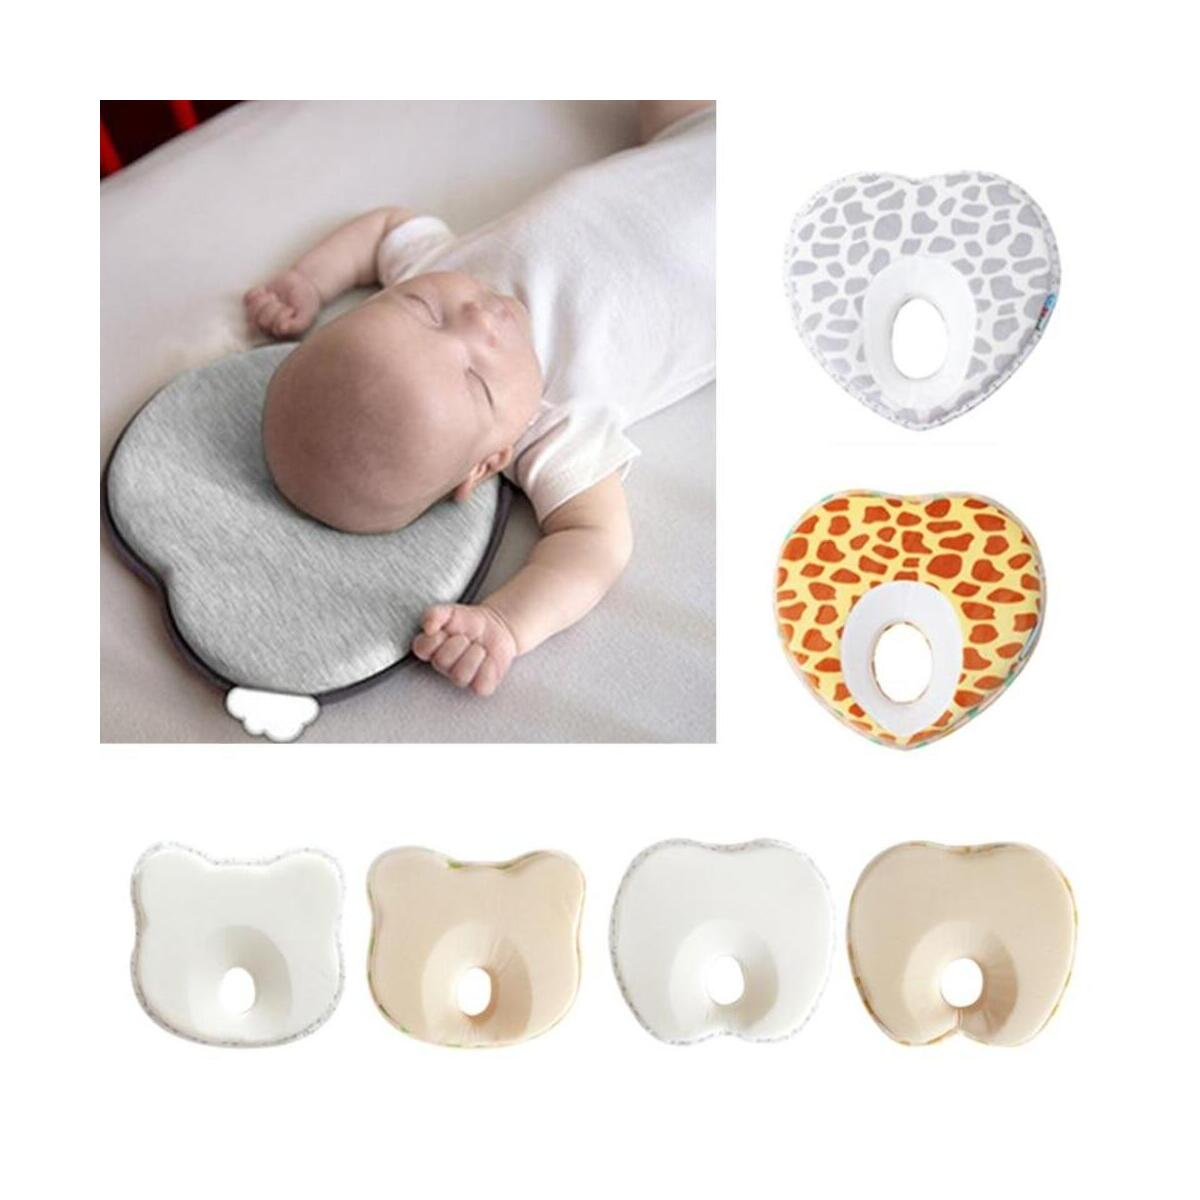 Infant Anti Roll Pillow Shape Toddler Sleeping Positioner Cushion Flat Head Neck Protect Newborn Baby Bedding